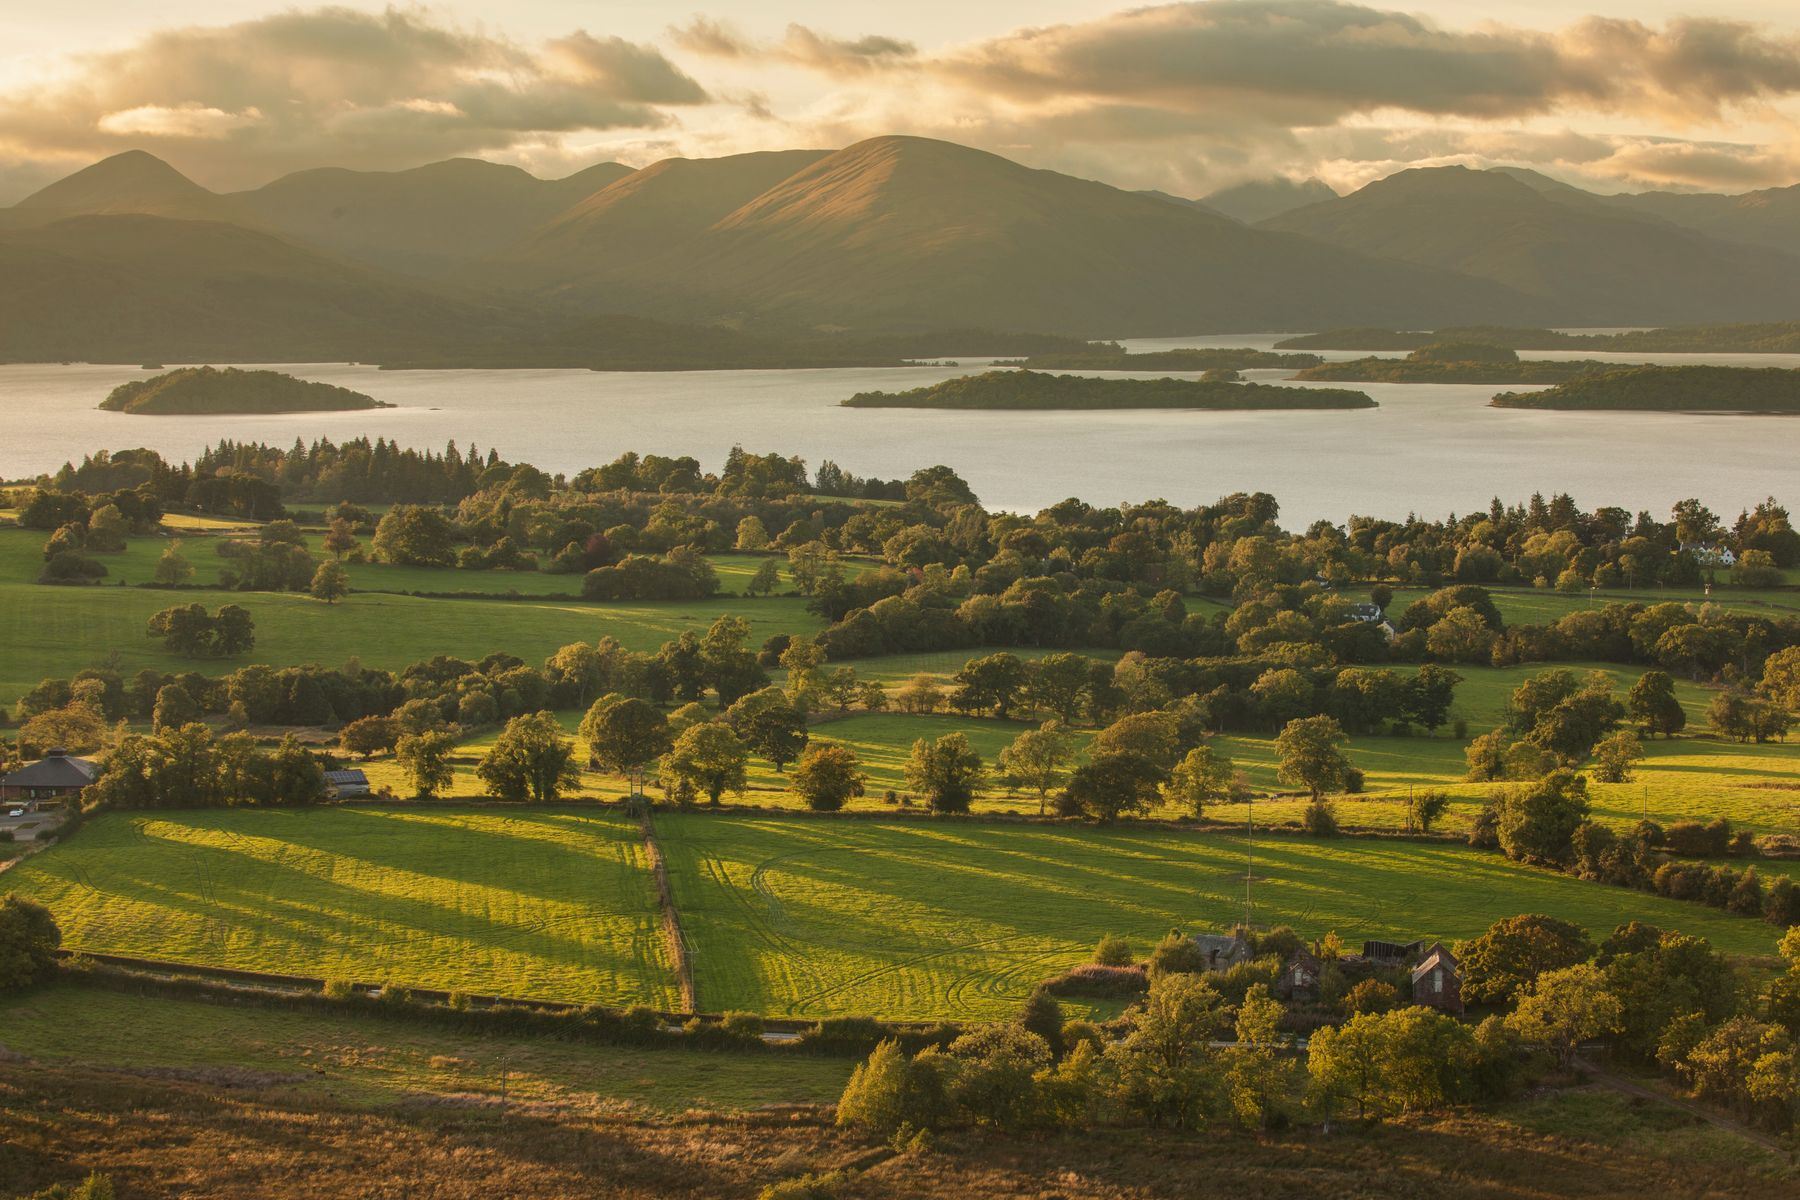 Loch Lomond, one of Scotland's top tourist attractions